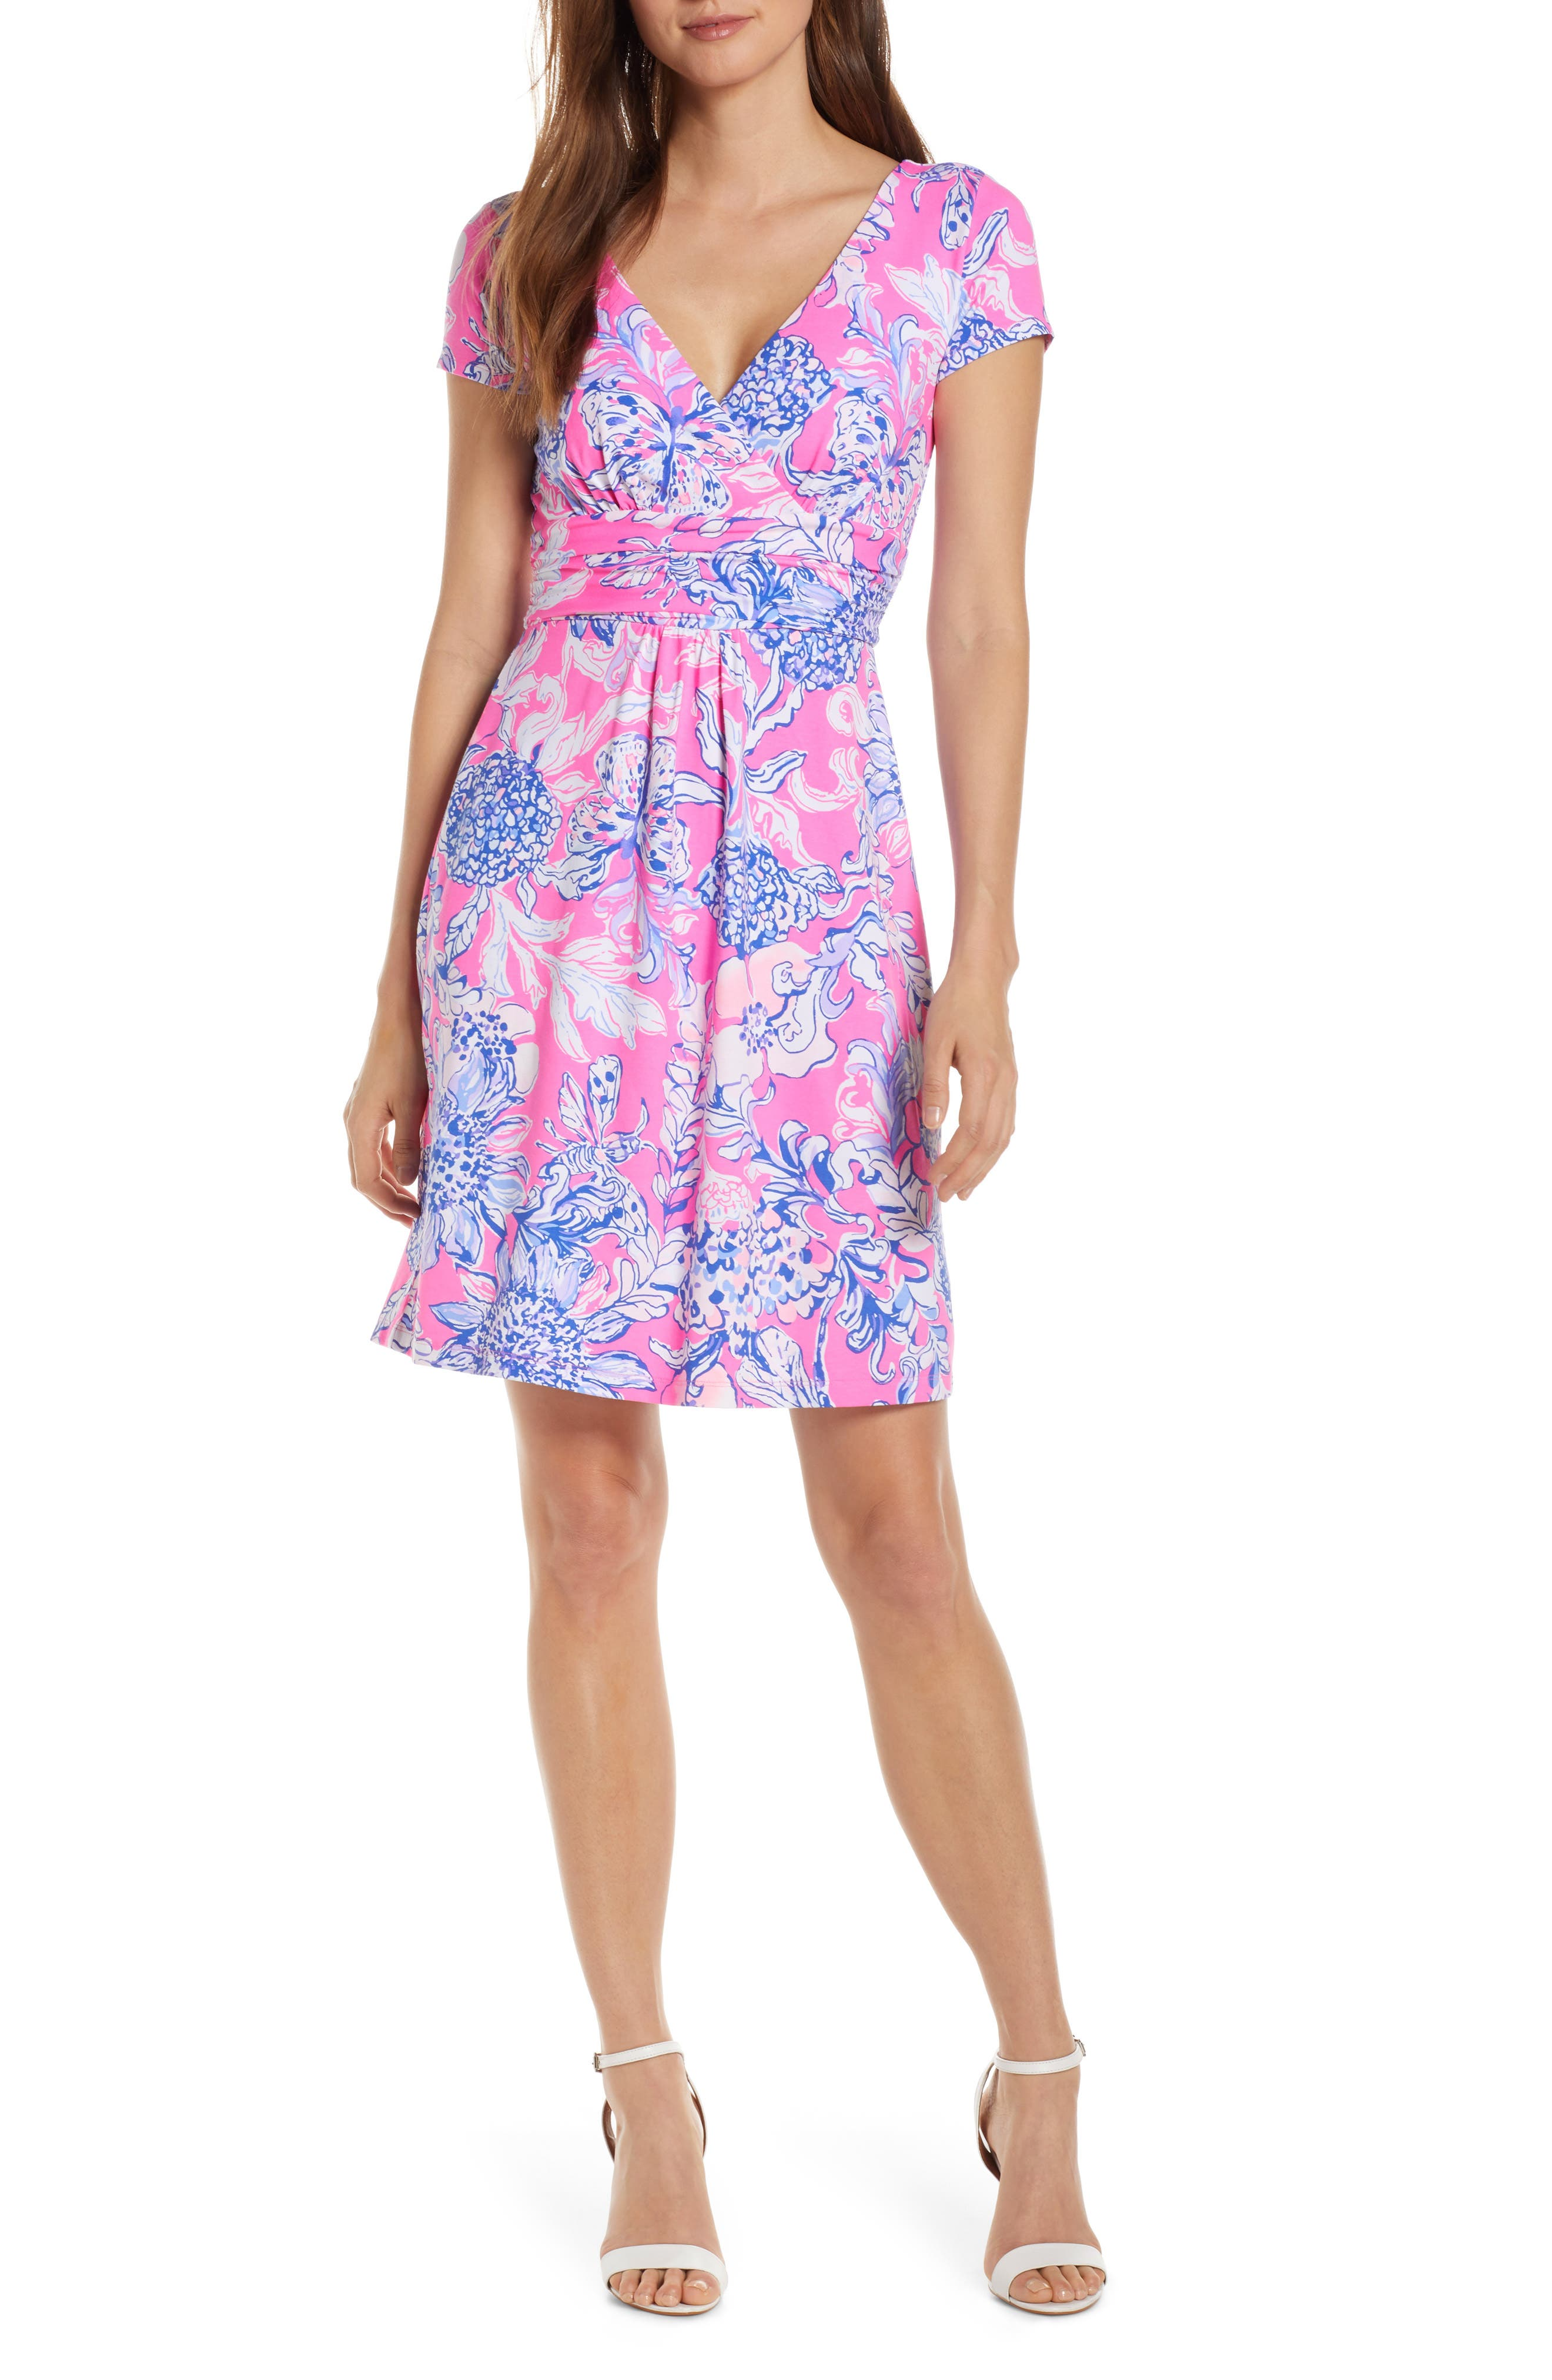 Lilly Pulizter<sup>®</sup> Winslow Print Surplice Dress, Main, color, PINK TROPICS SUN DRENCHED